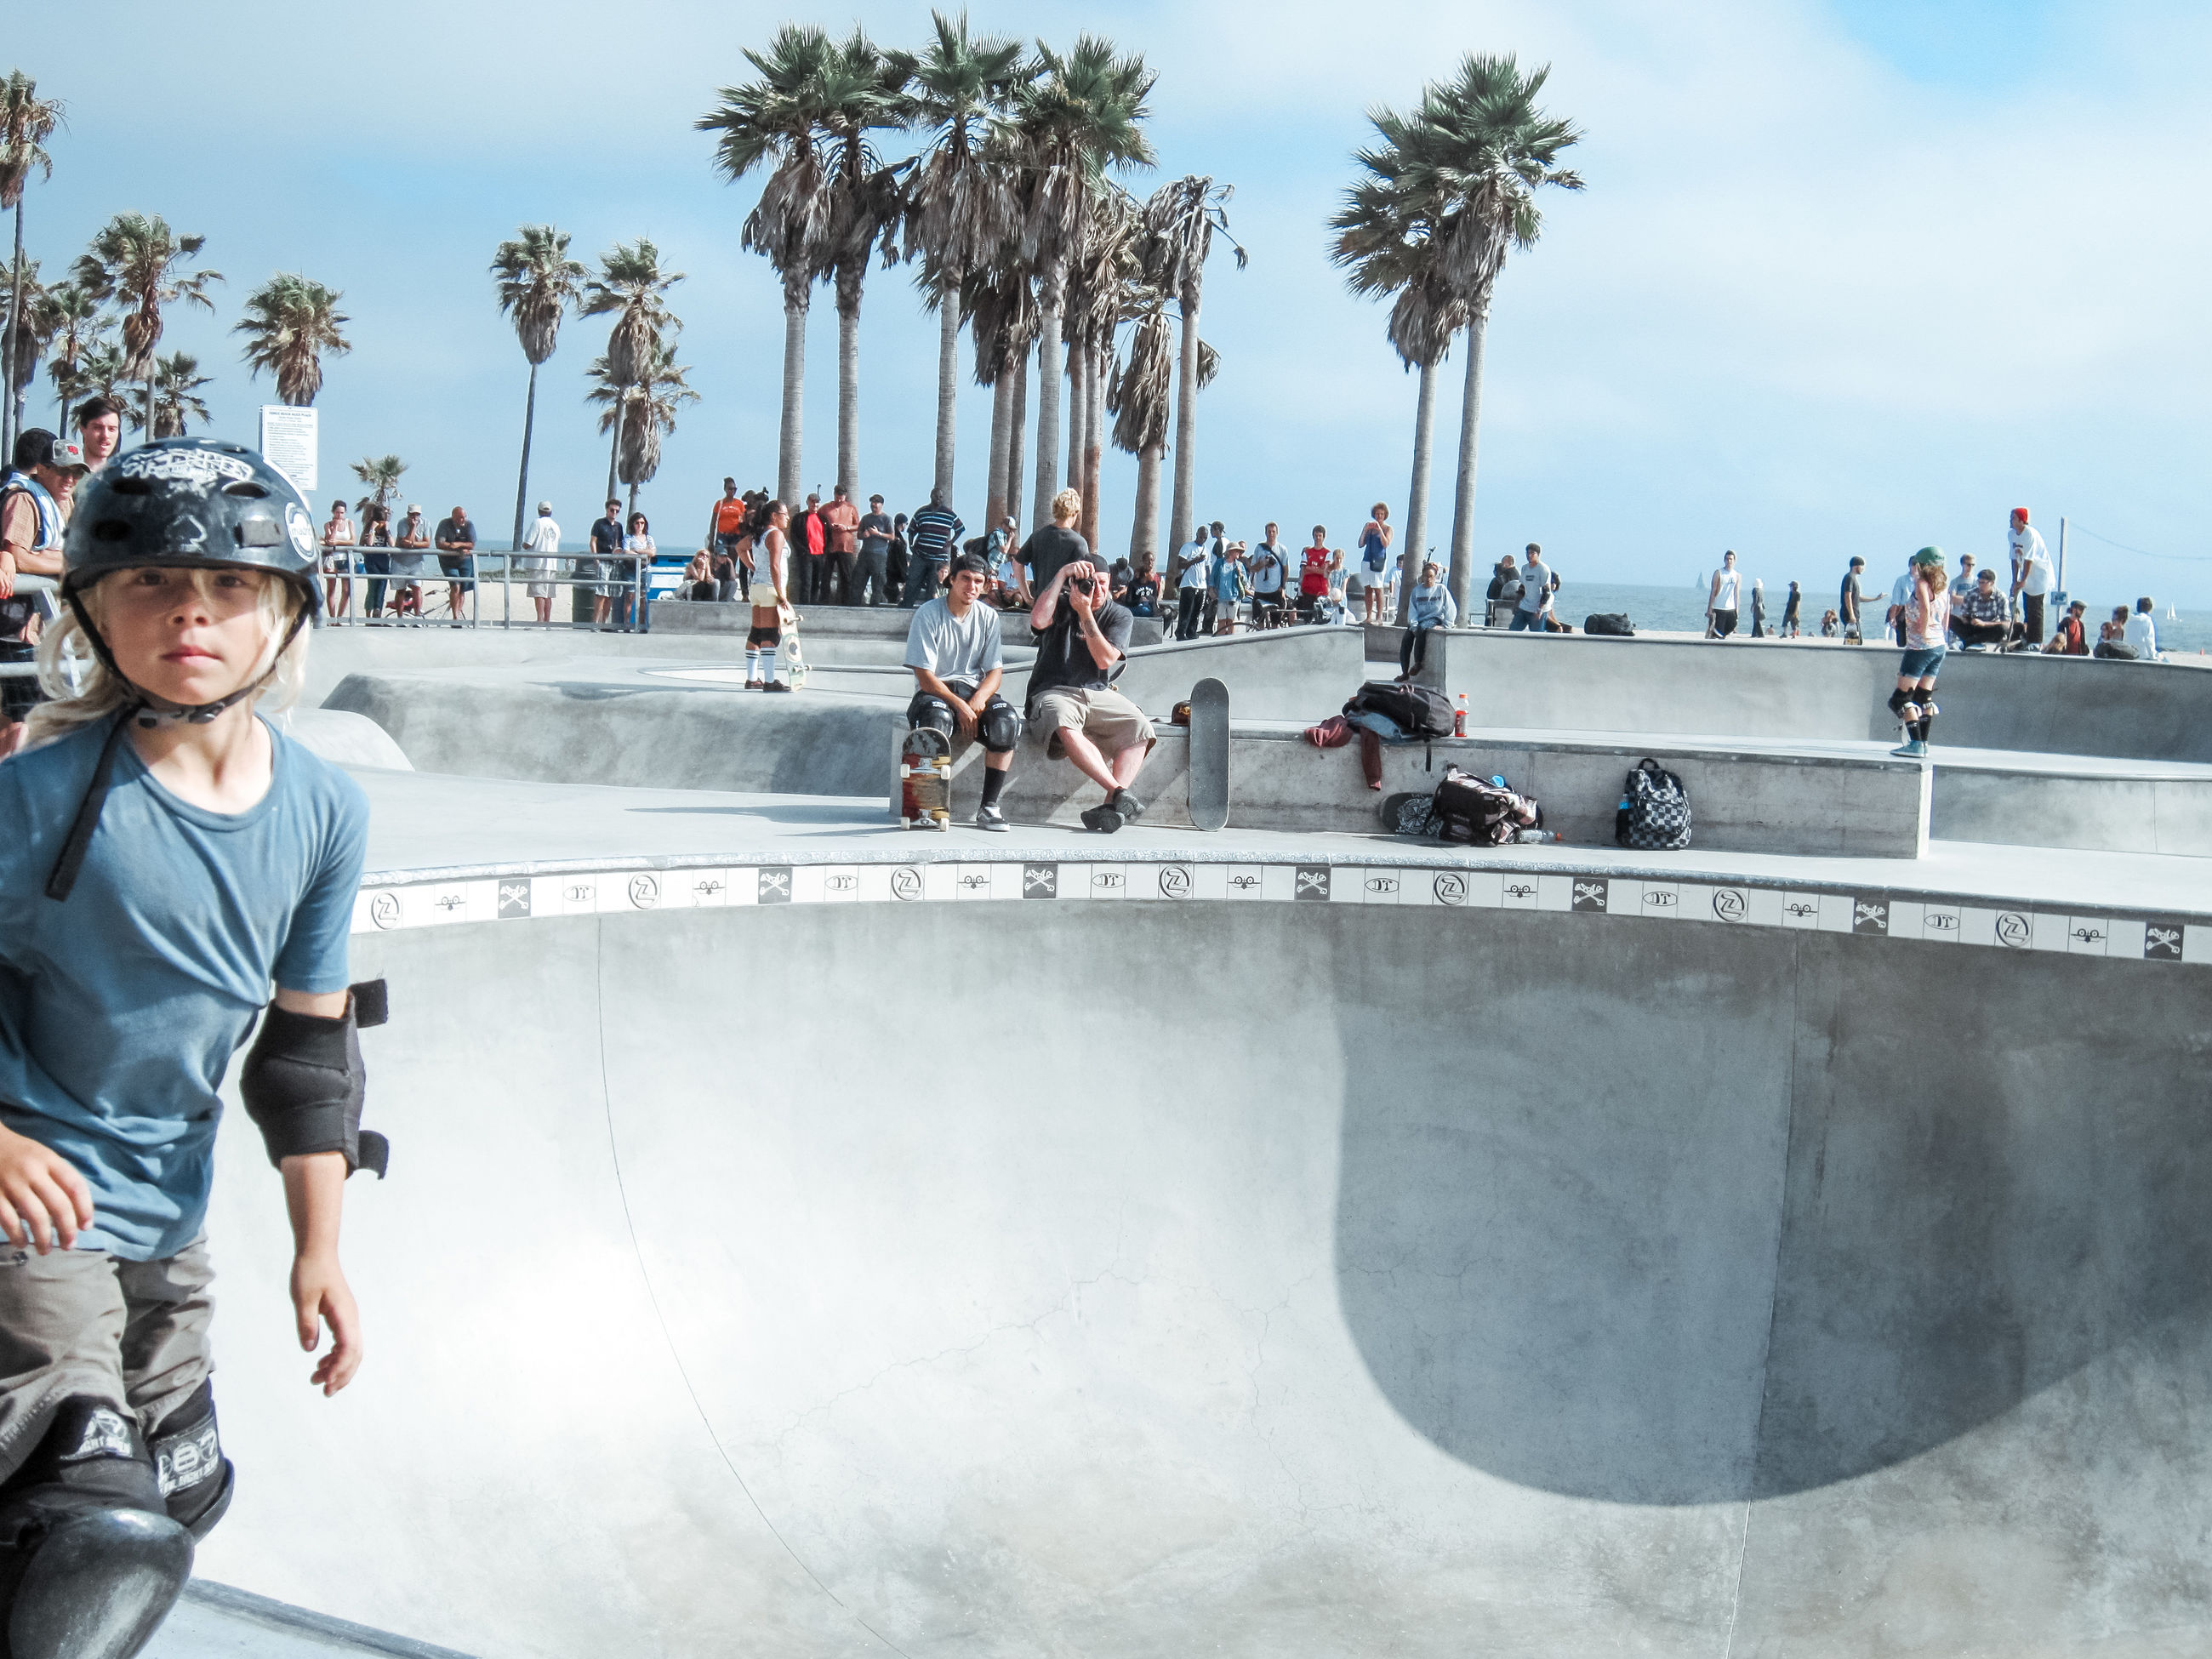 real people, group of people, tropical climate, leisure activity, palm tree, crowd, tree, sky, skateboard park, large group of people, nature, men, lifestyles, skateboard, day, sport, plant, sports ramp, enjoyment, outdoors